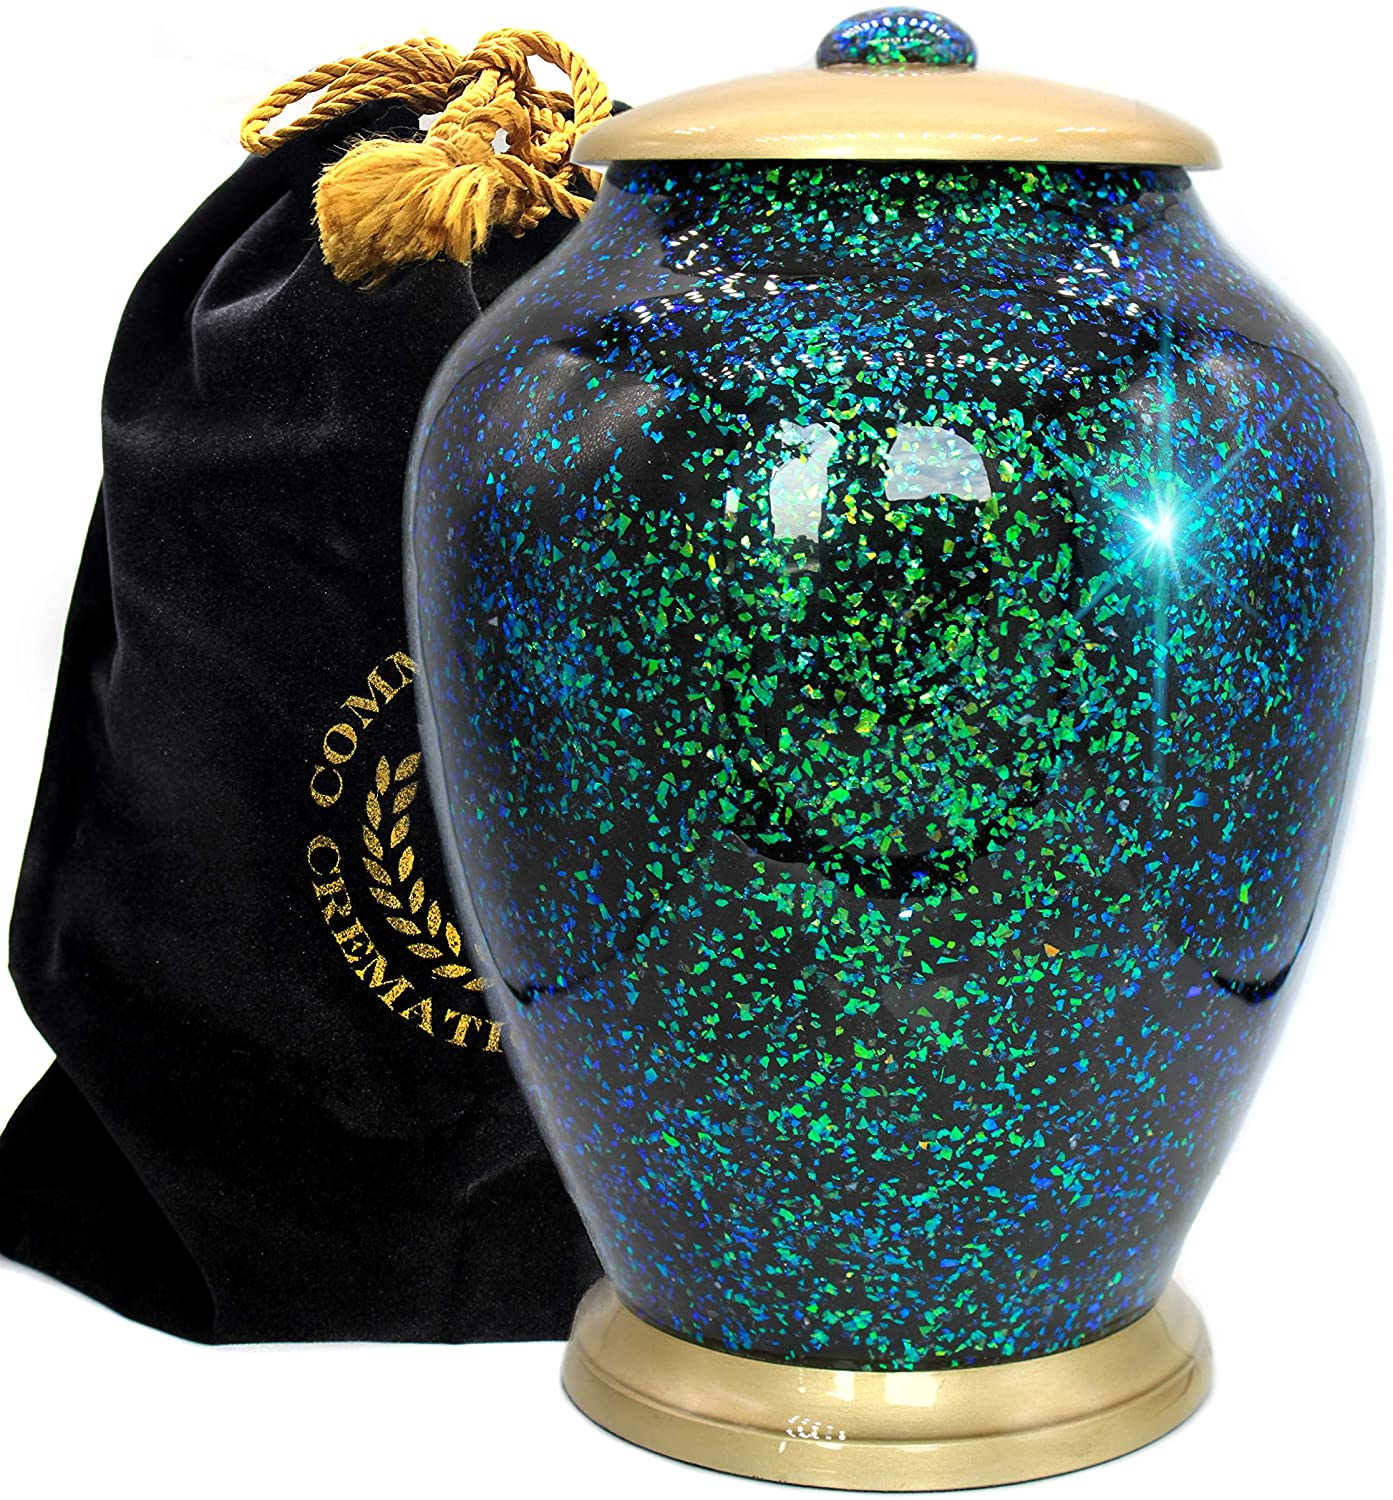 Shimmering Light Cremation Urns for Human Ashes Adult for Funeral, Niche, Burial or Columbarium, Urns for Ashes Adult (Atlantis, Large)